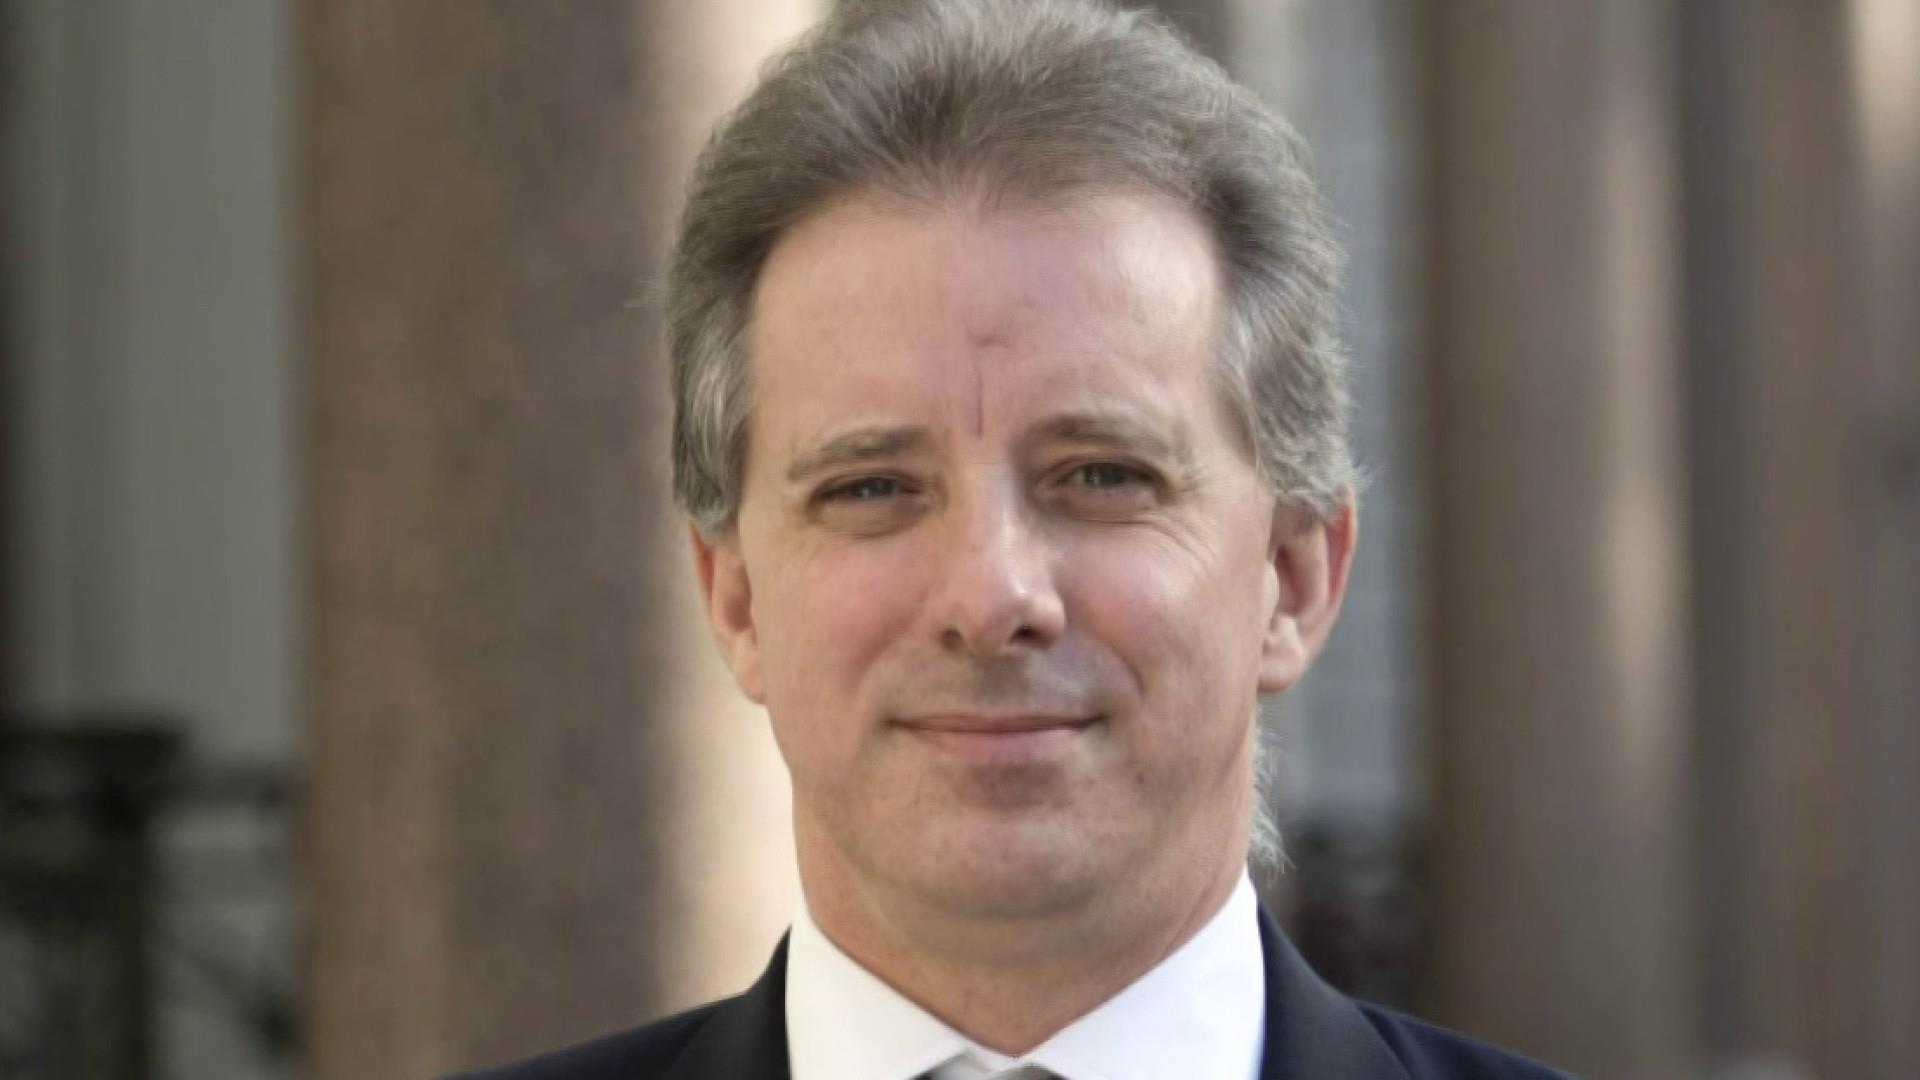 Fusion GPS co-founders on Steele dossier, 'Crime in Progress' book